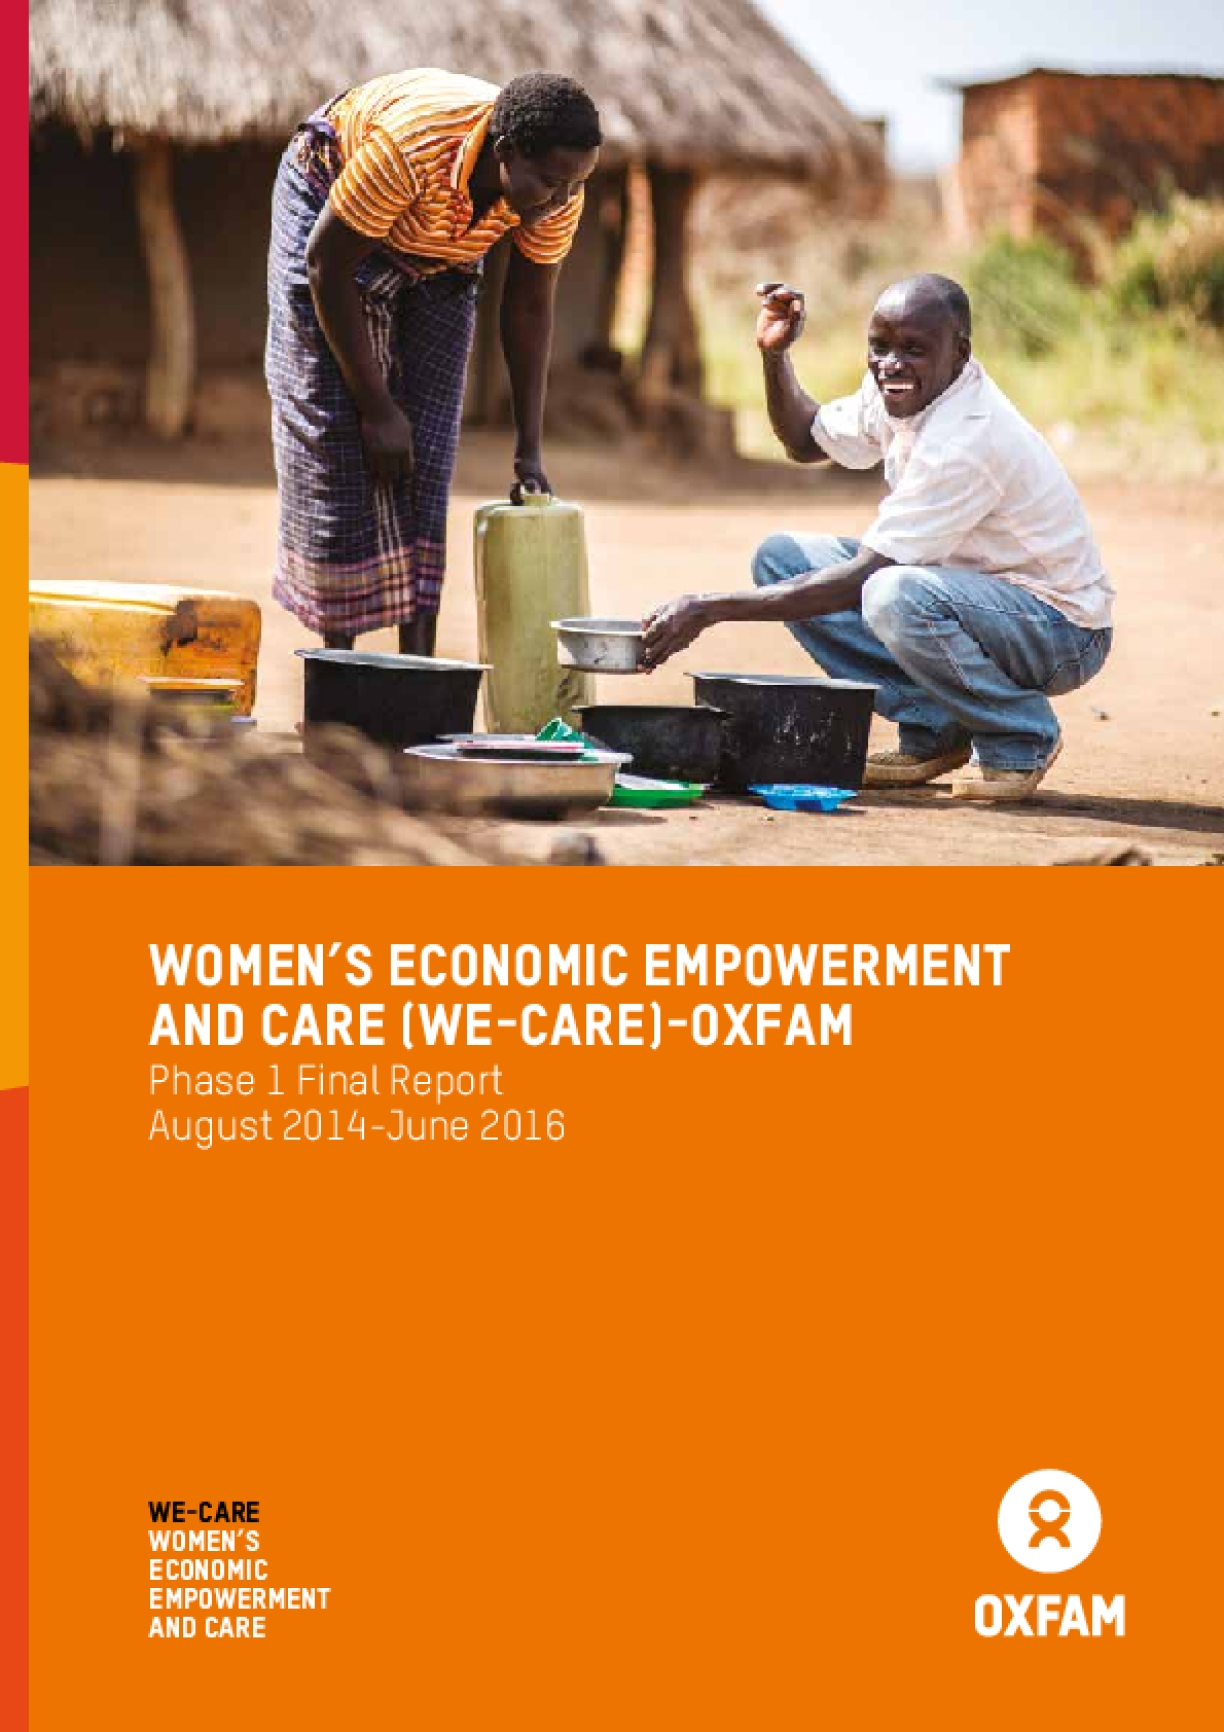 Women's Economic Empowerment and Care (WE-Care) - Oxfam: Phase 1 final report